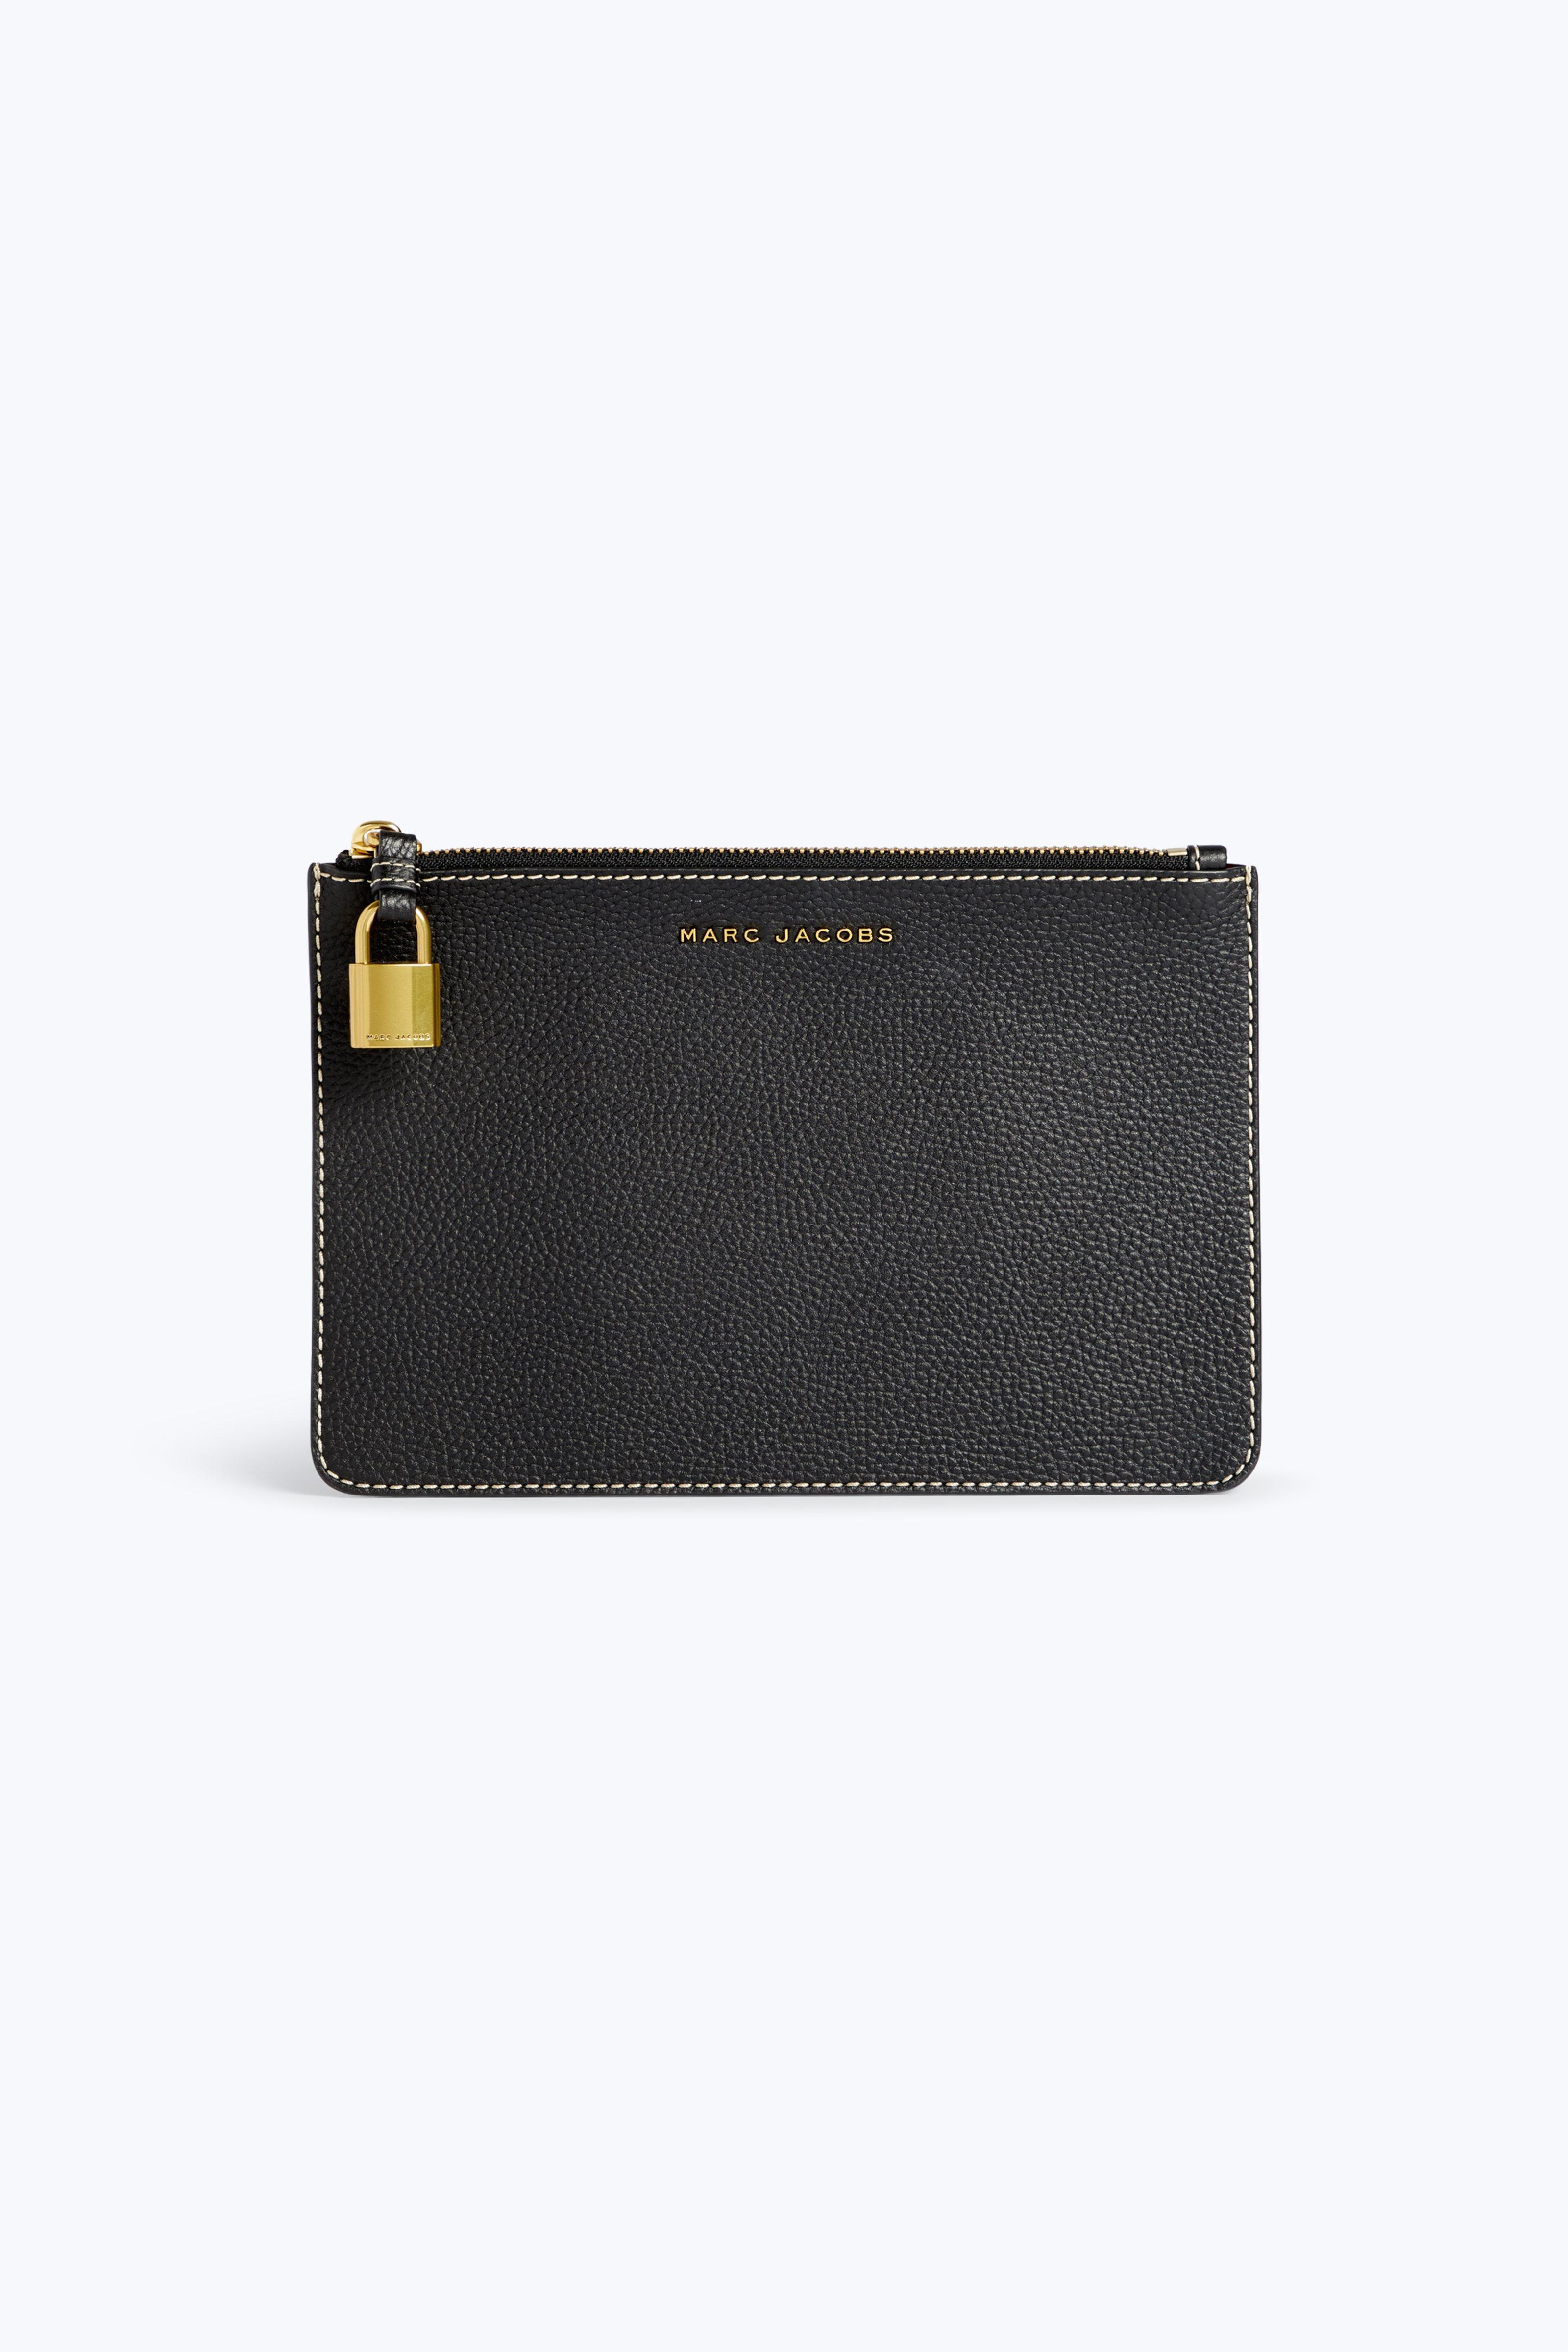 Women\'s Wallets, Card Cases and Passport Covers | Marc Jacobs